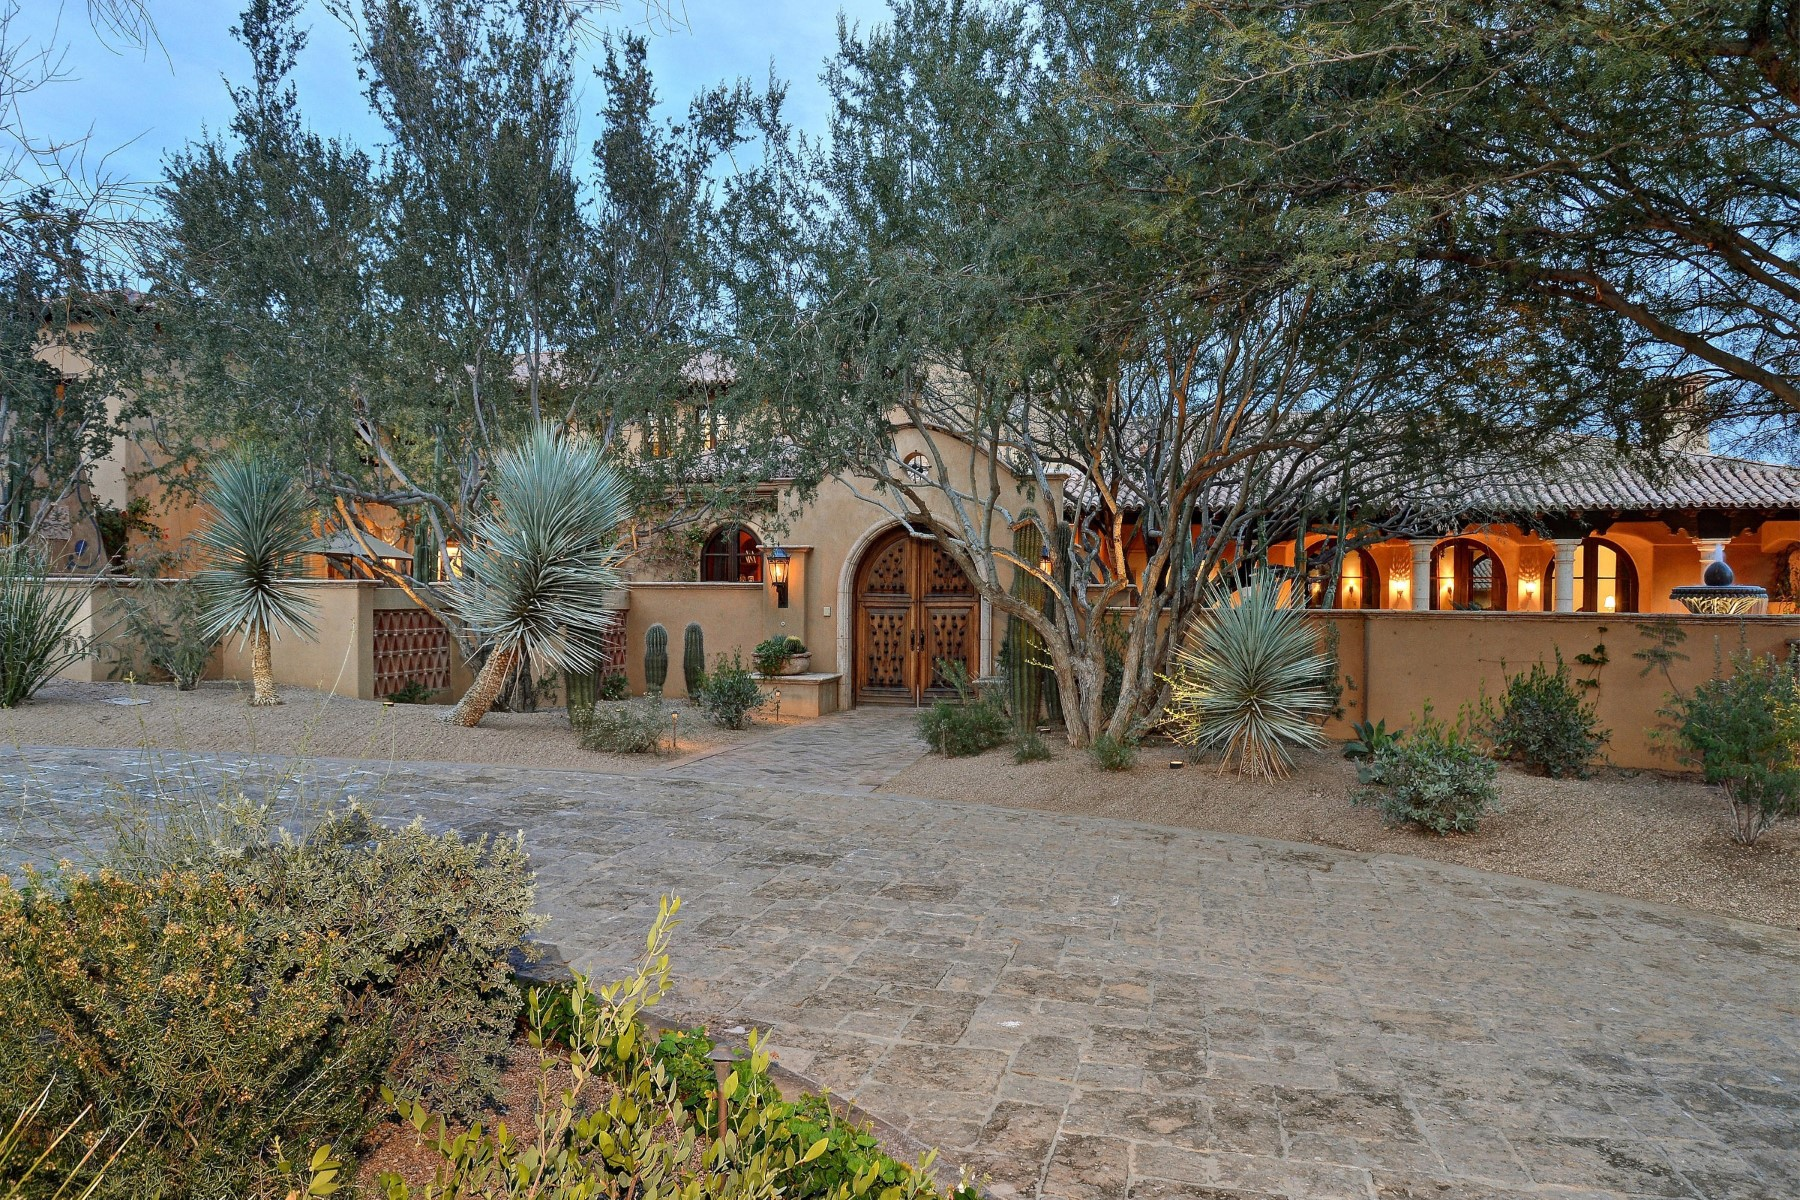 Maison unifamiliale pour l Vente à Great value at the base of Camelback Mountain with stunning views 5515 N Saguaro Rd Paradise Valley, Arizona, 85253 États-Unis